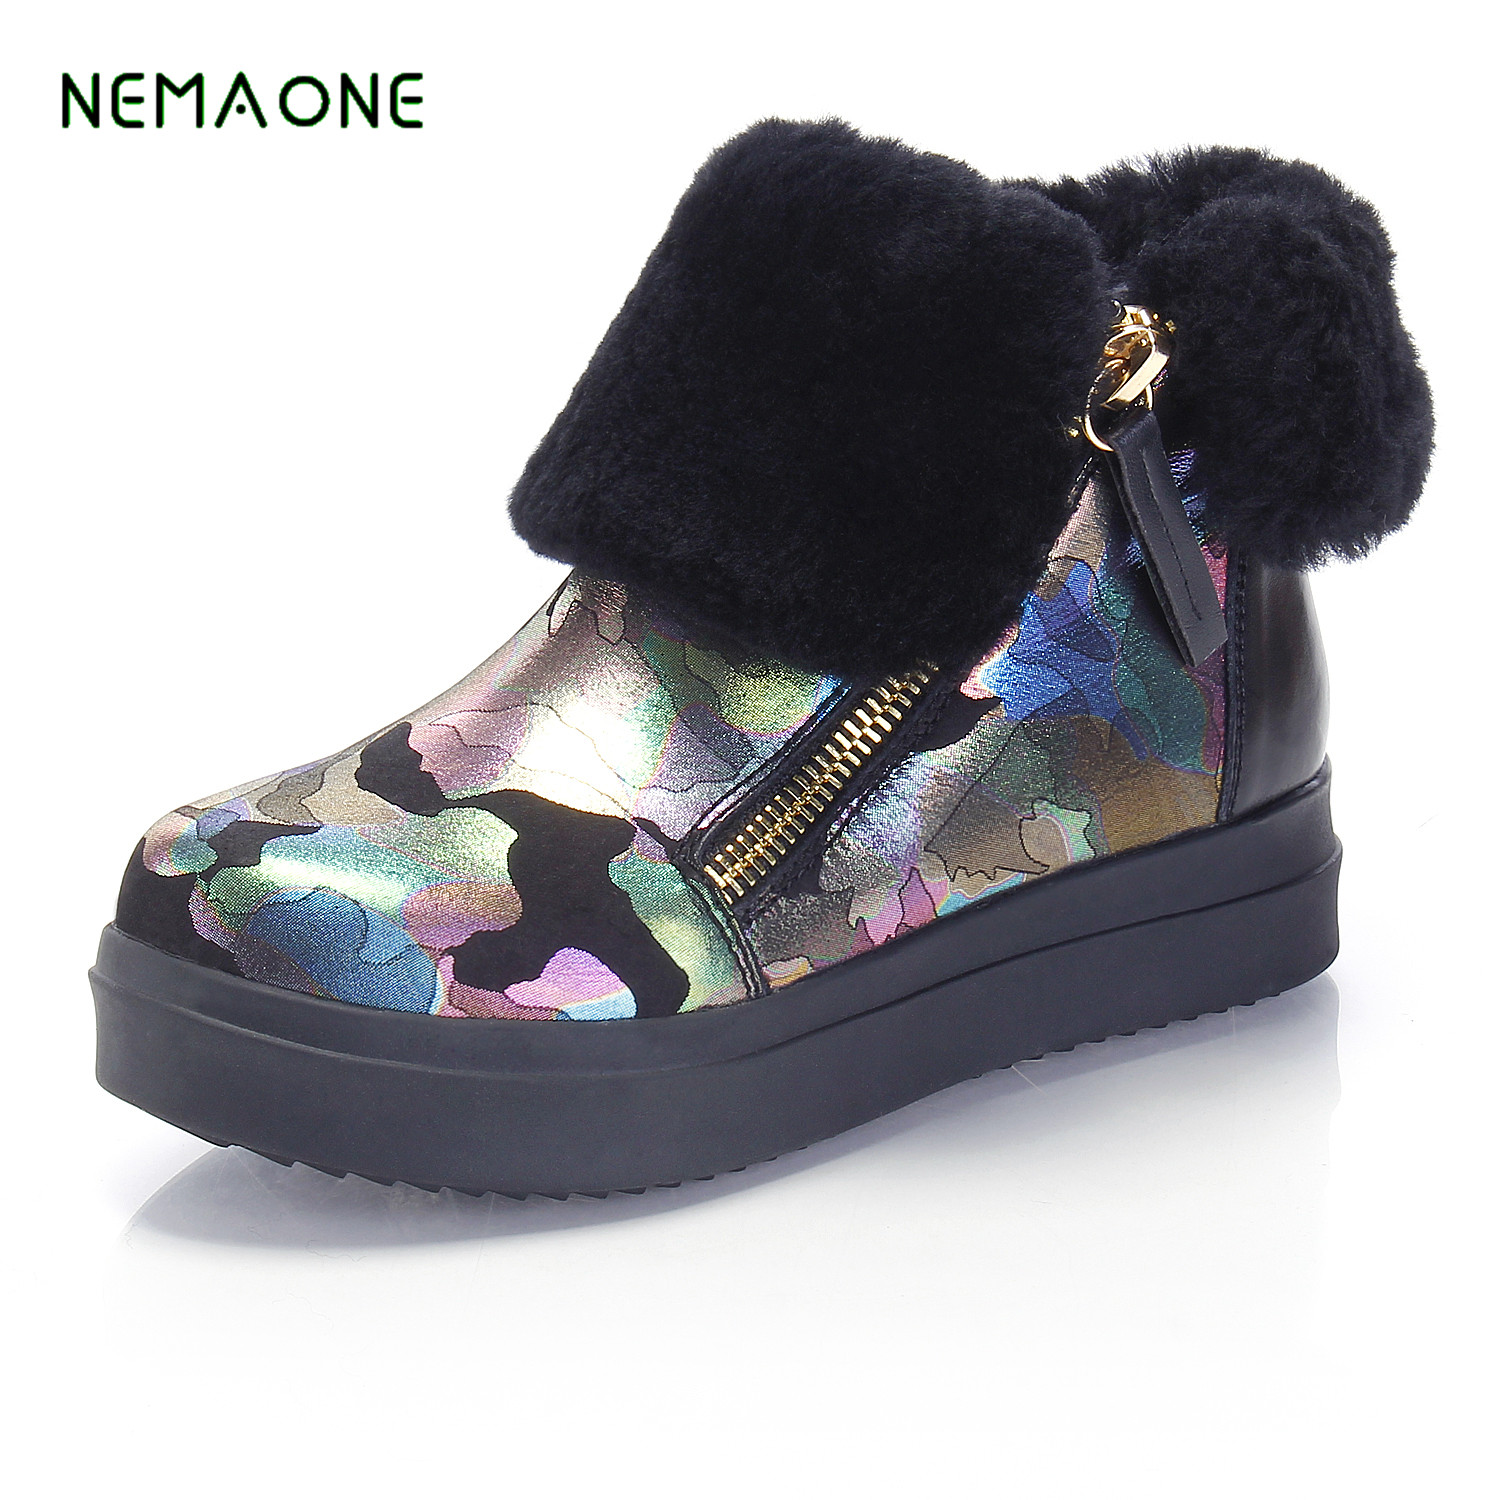 NEMAONE 2017 New Winter Women Snow Boots Ankle Shoes Handmade Plush Shoes Warm Boots Tassel Shoes new winter children snow boots boys girls boots warm plush lining kids winter shoes